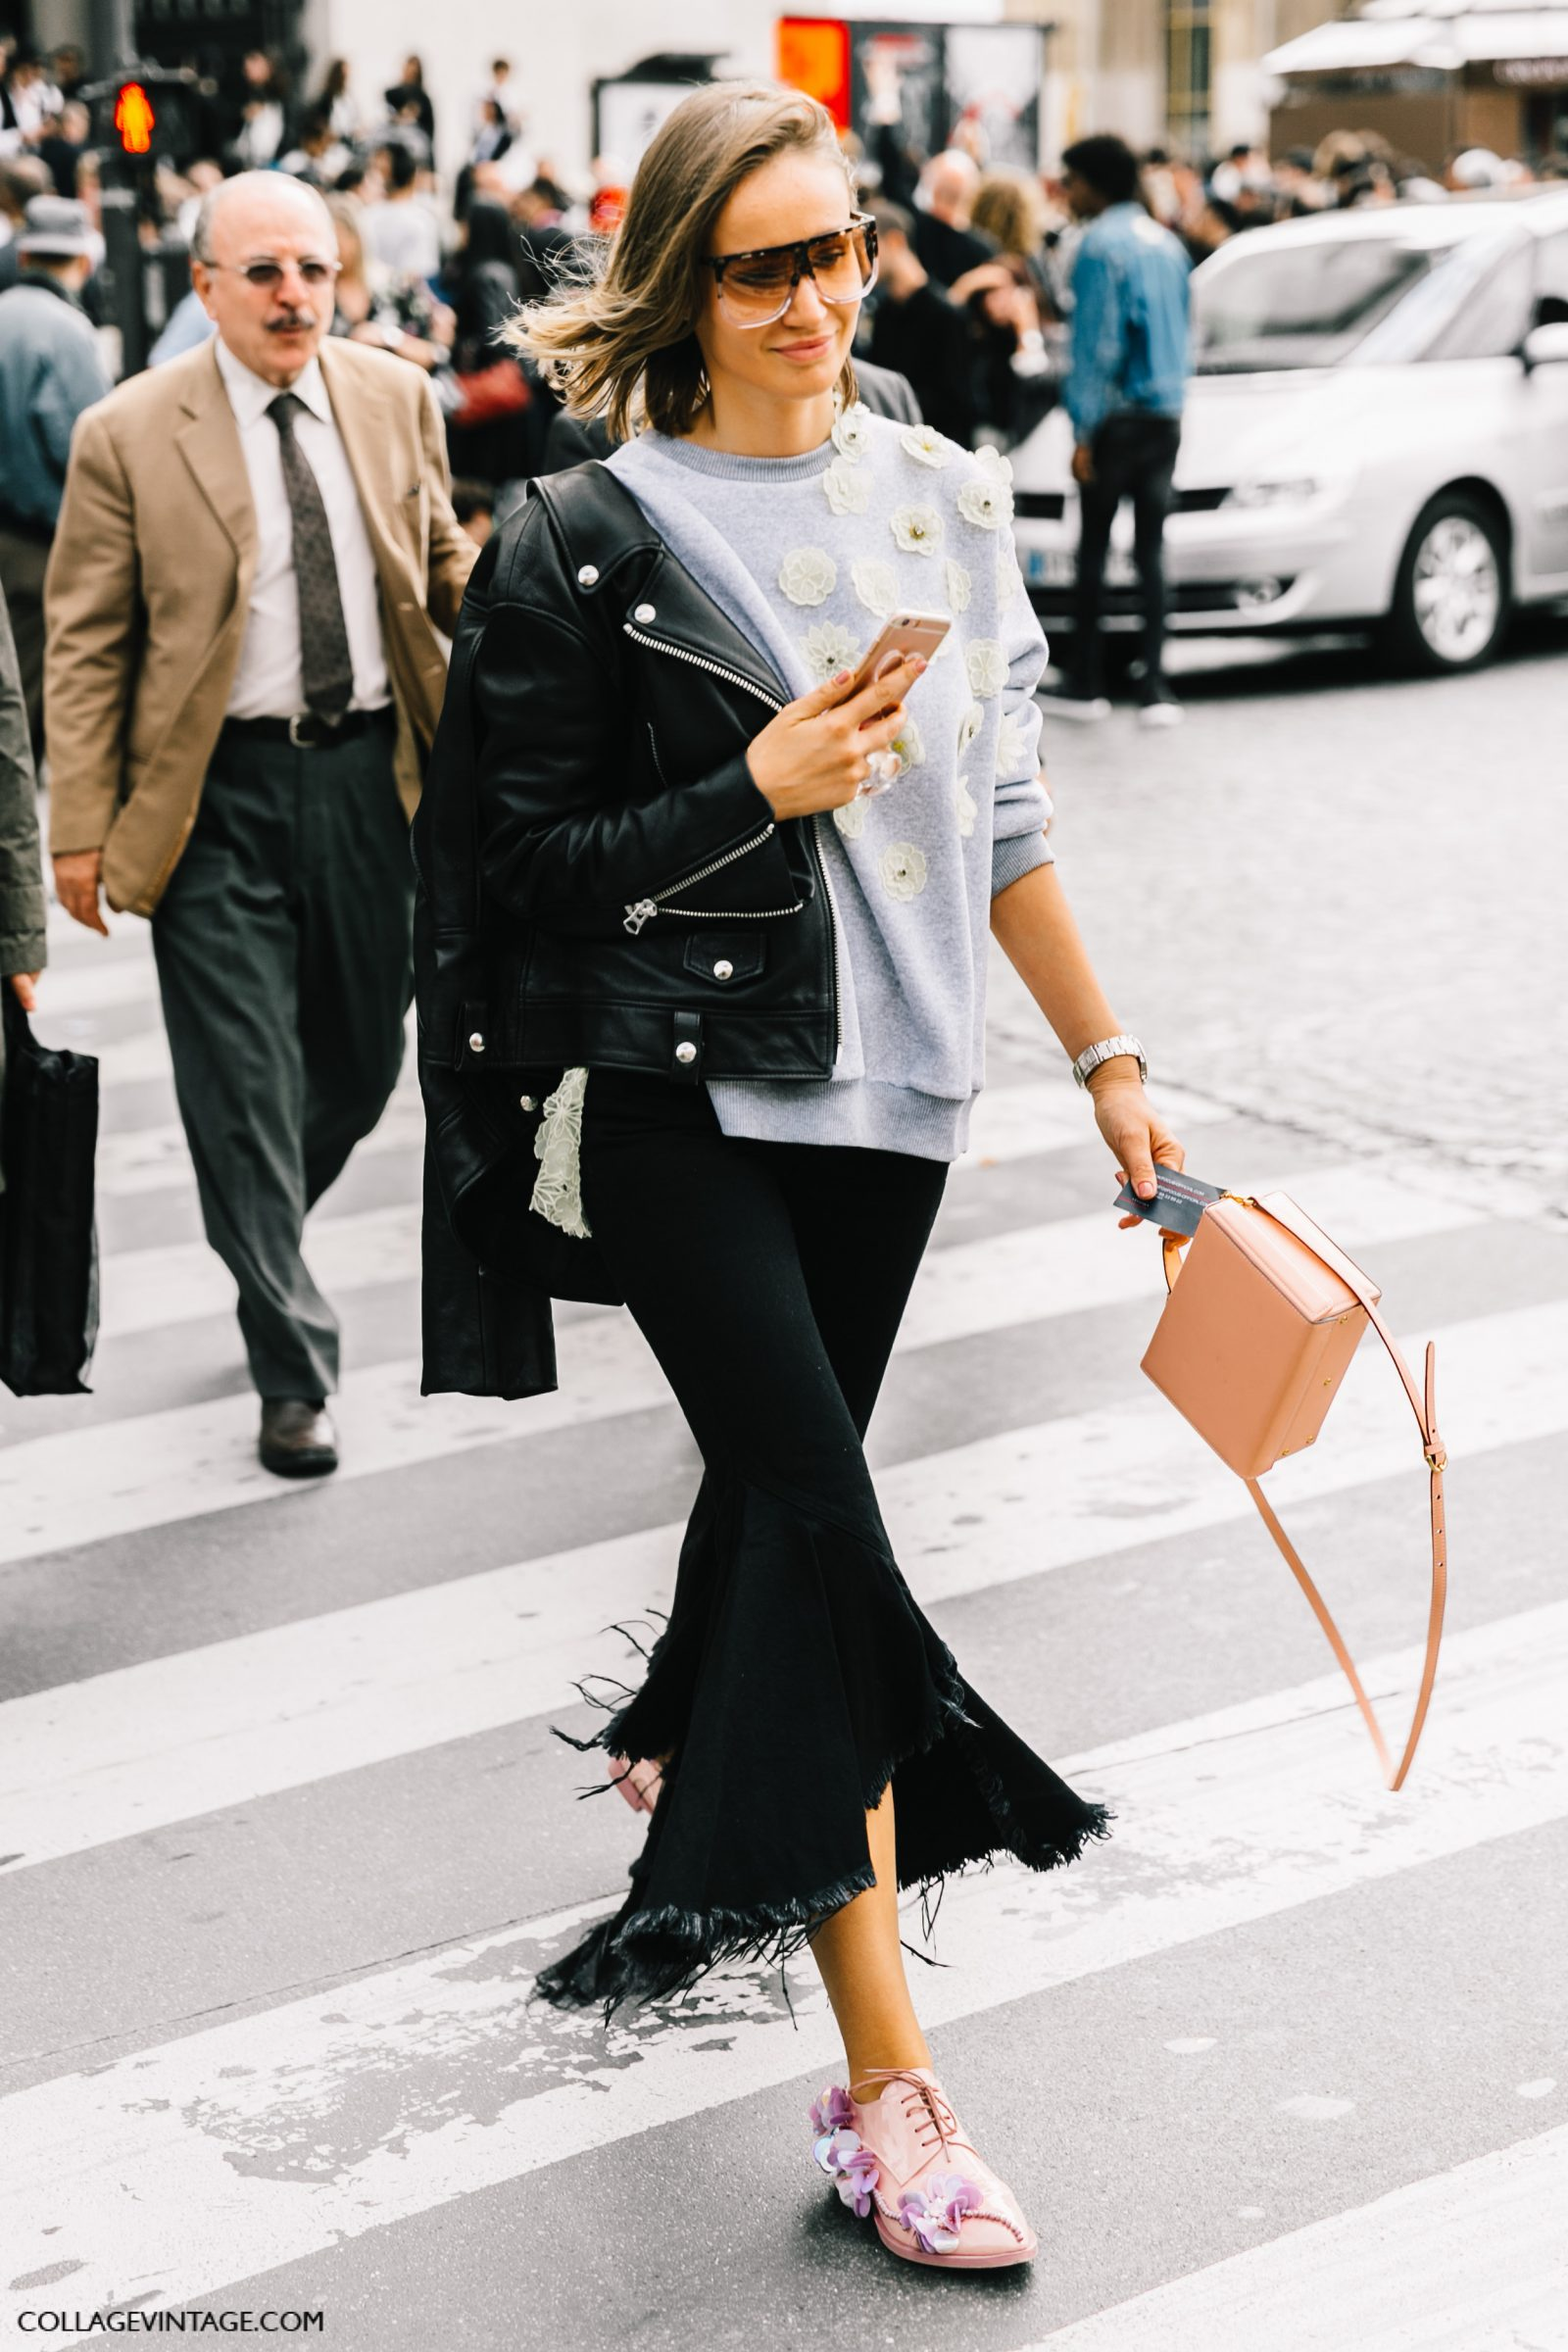 pfw-paris_fashion_week_ss17-street_style-outfits-collage_vintage-chloe-carven-balmain-barbara_bui-137